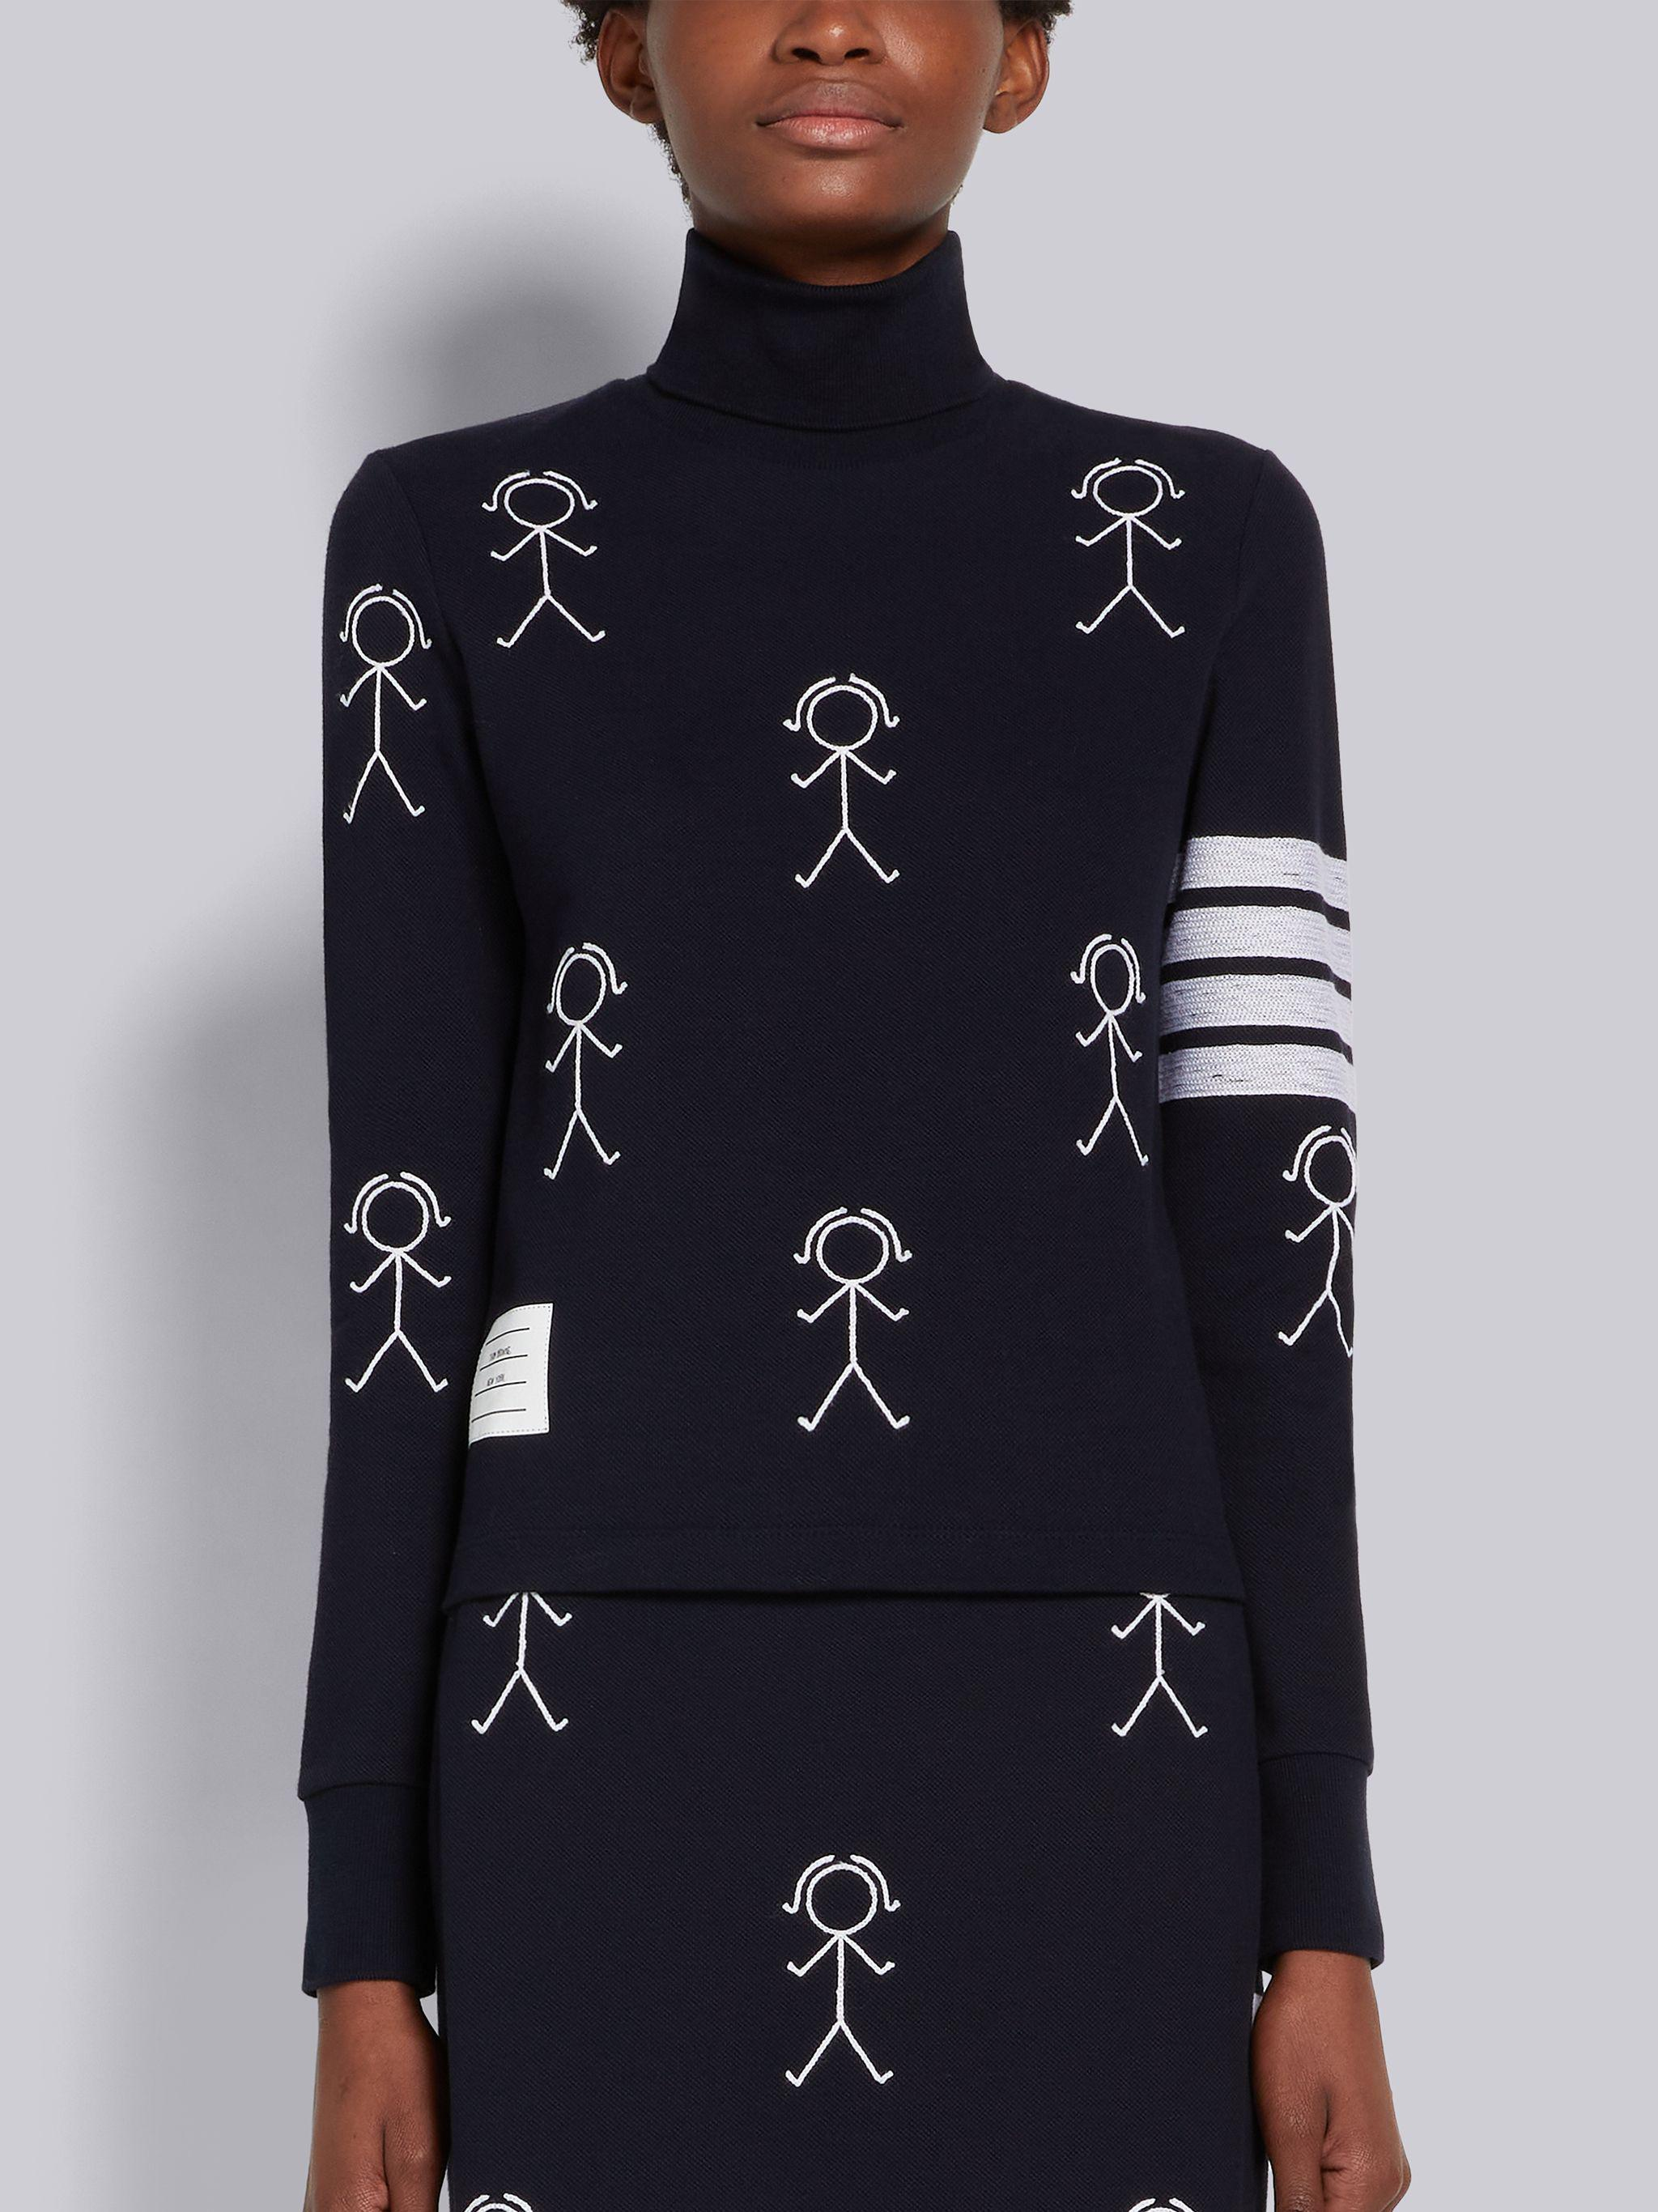 Navy Classic Pique Chain Stitch 4-Bar & Mrs. Thom Embroidery Turtleneck